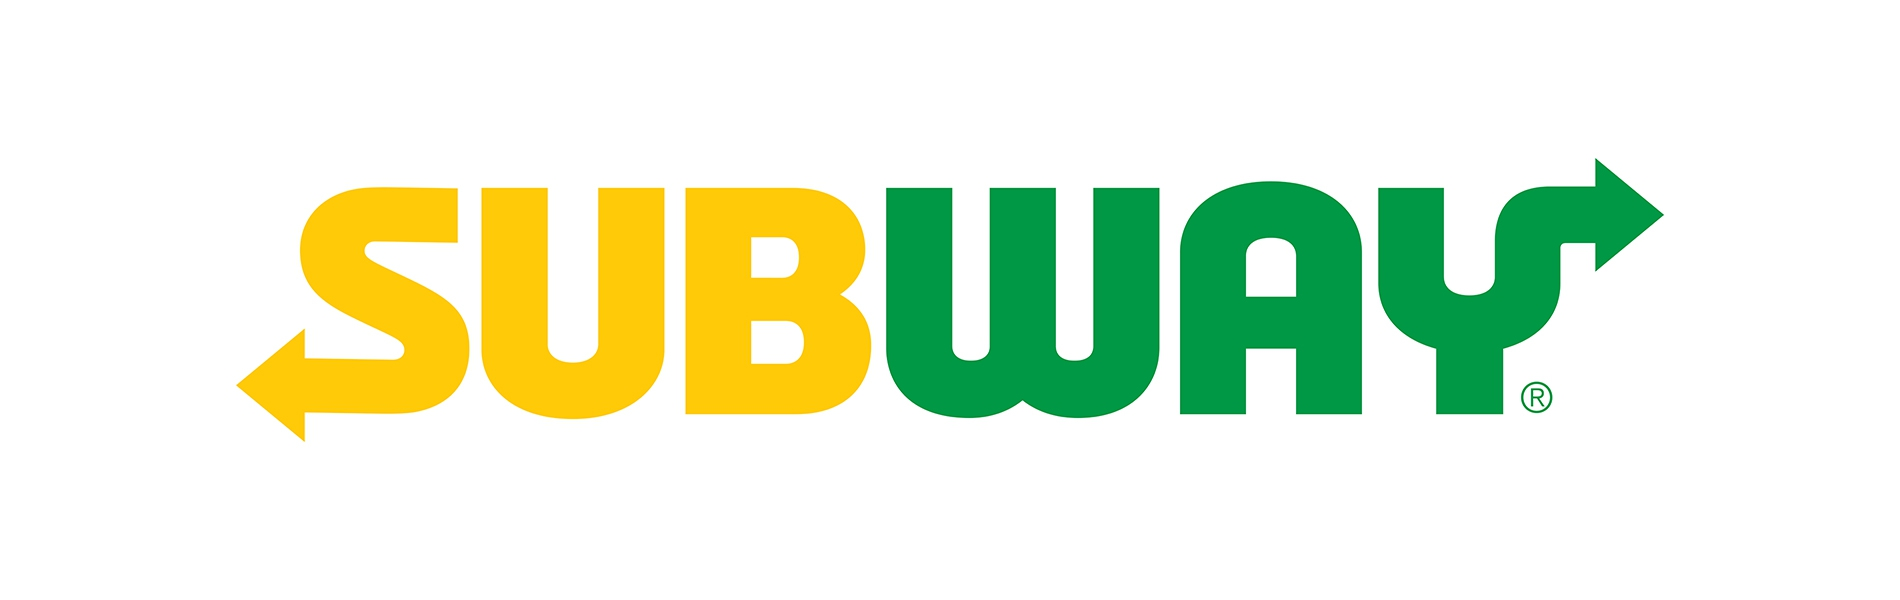 logo for Subway